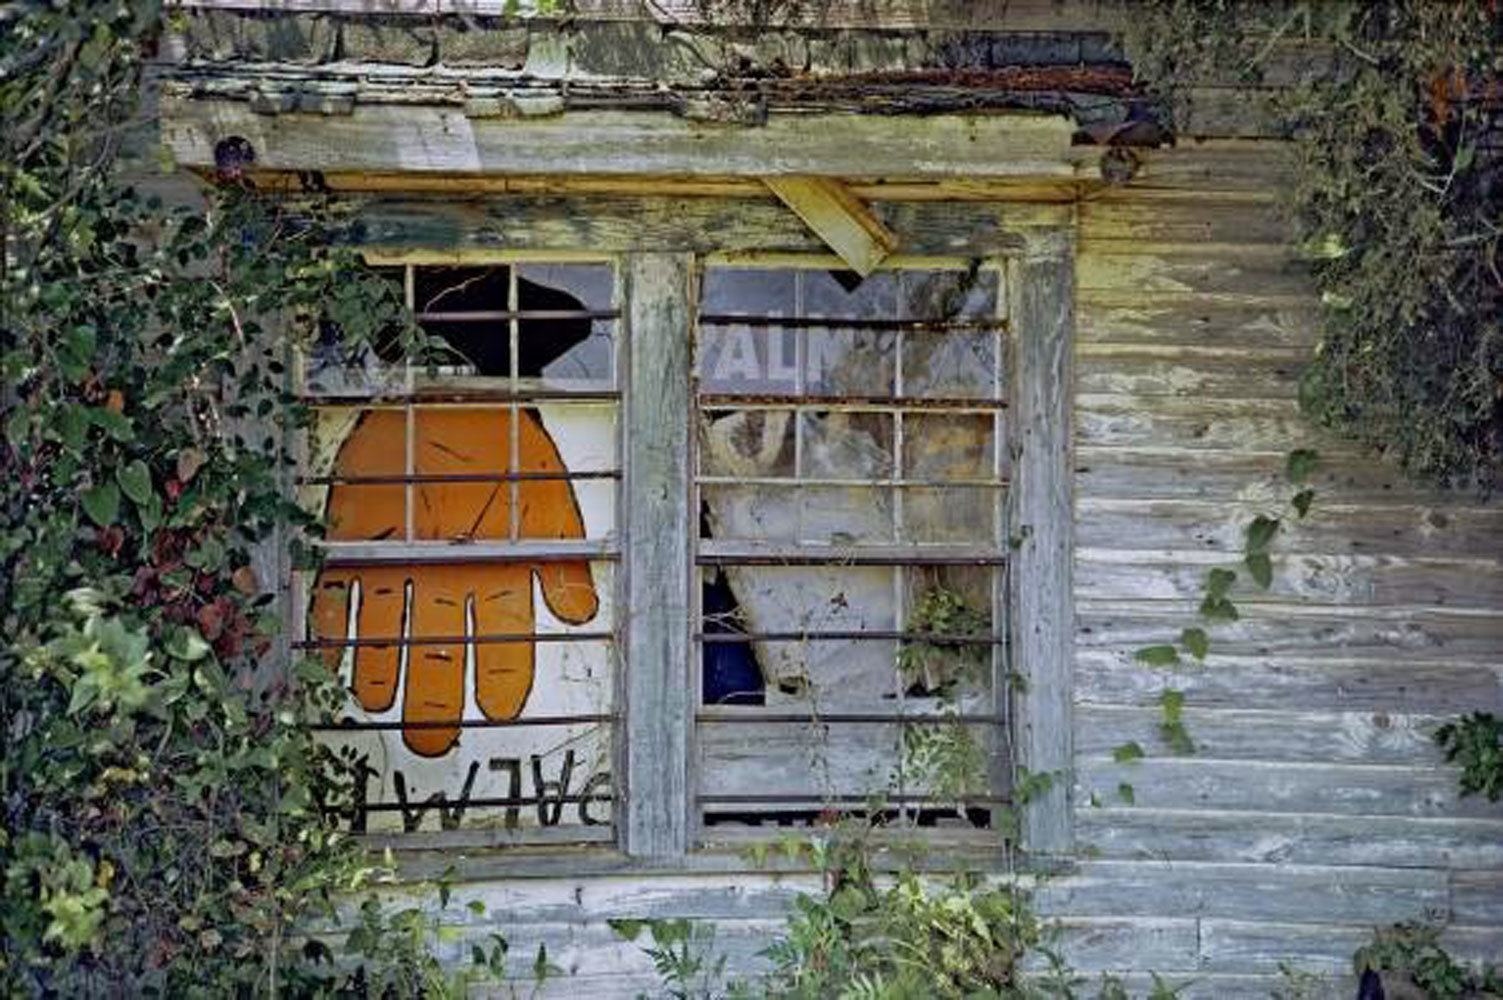 W.M.H. – 8/23/16 (William Christenberry, 1971)